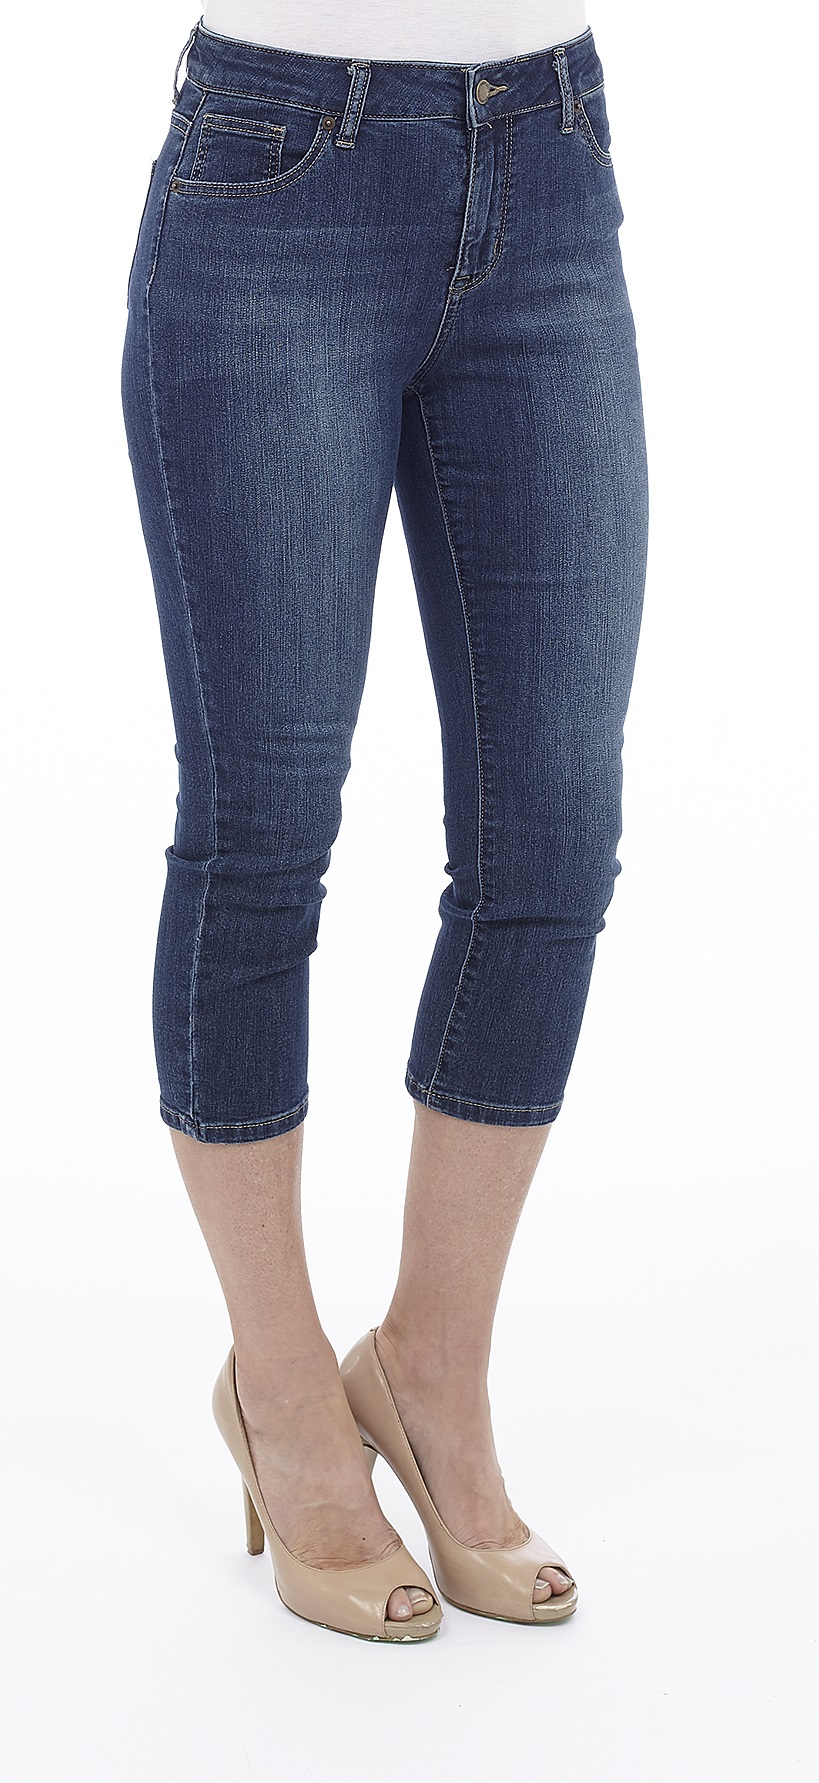 MISSY HIGH RISE Stretch Denim Capri